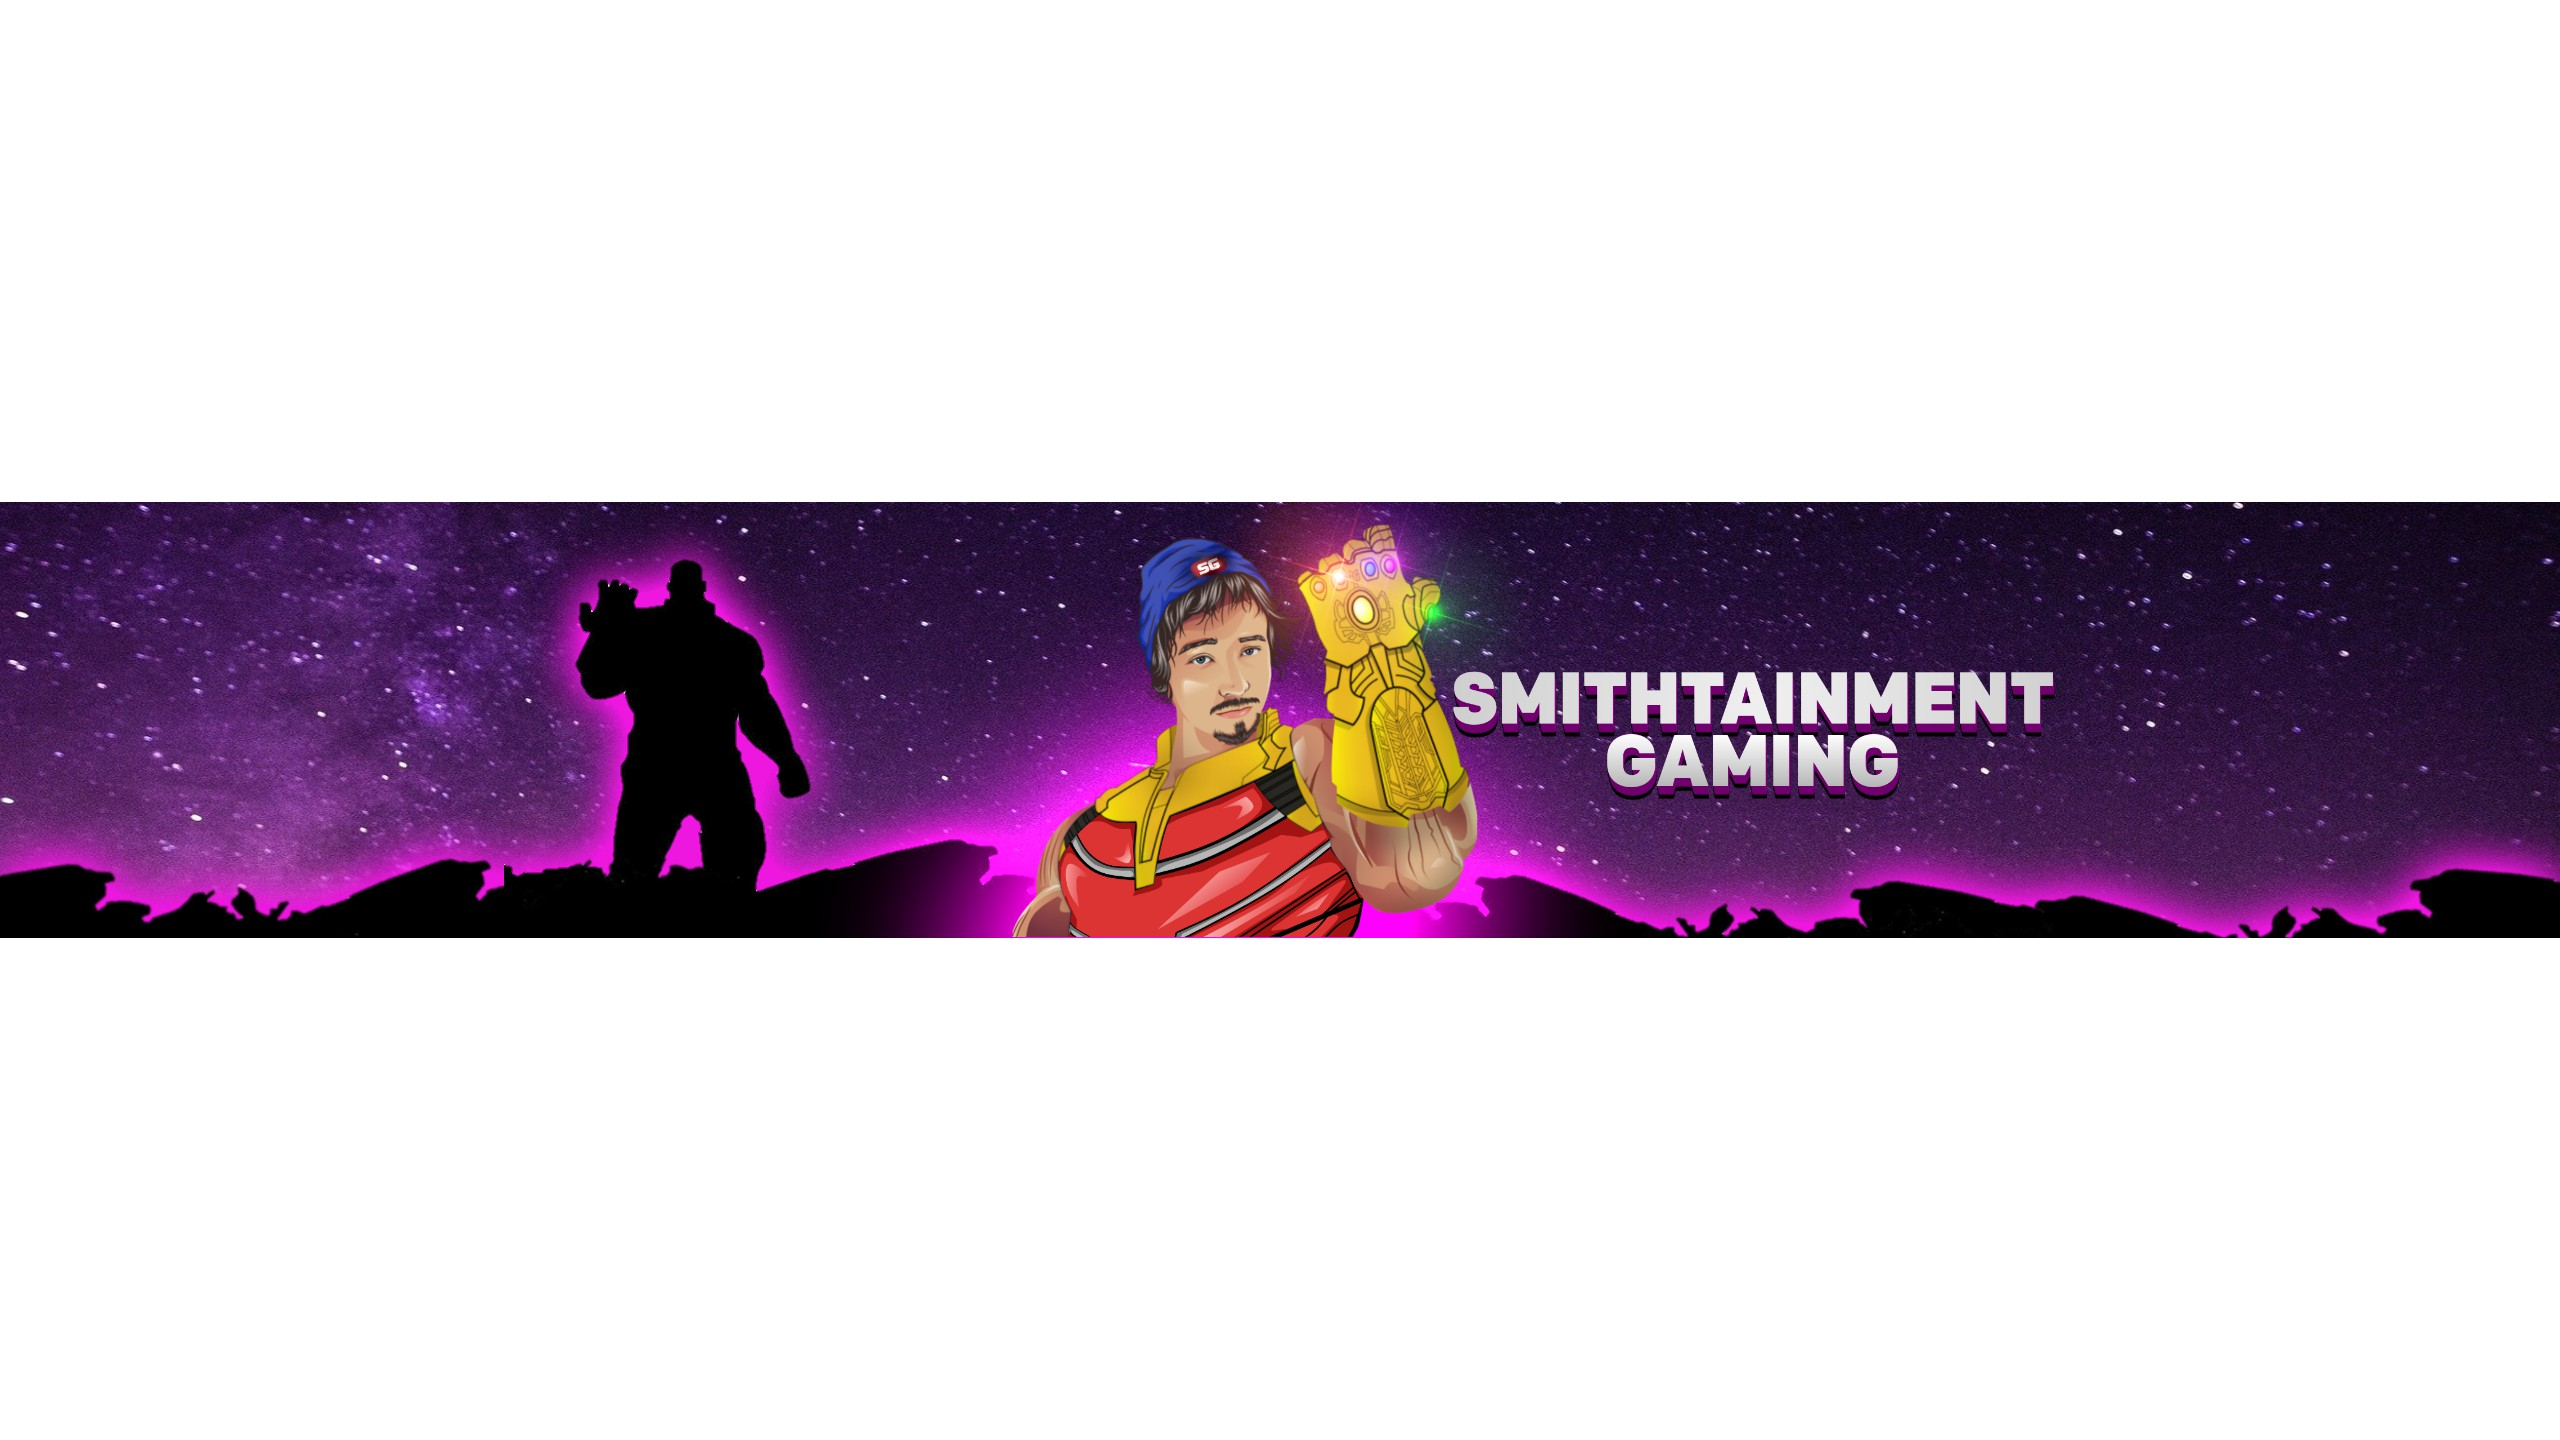 Smithtainment Gaming Small Banner